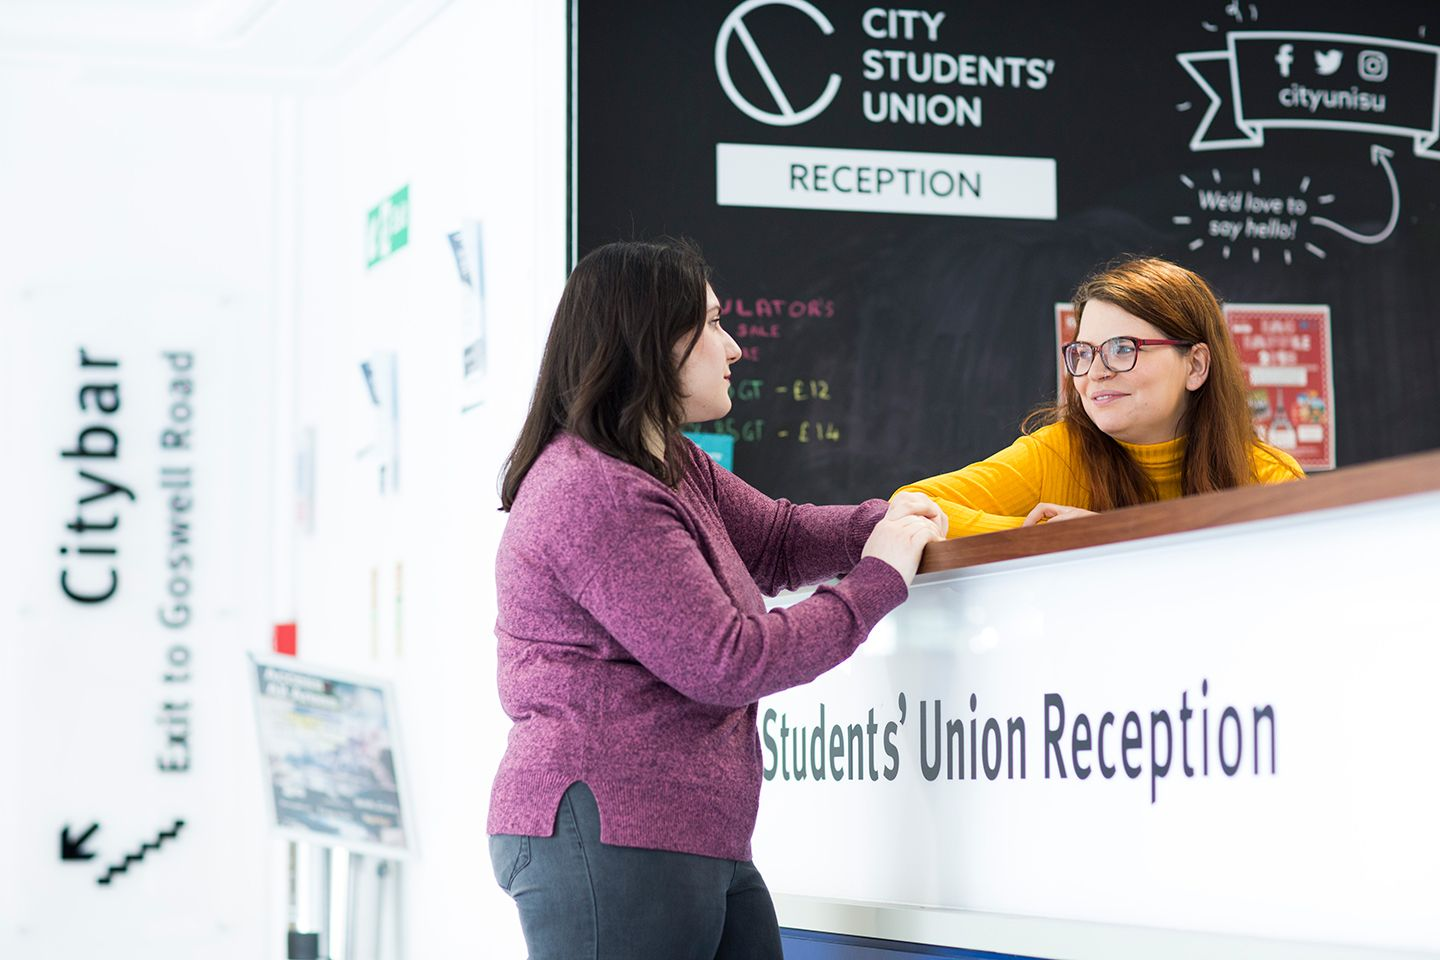 Student at the Students' union reception